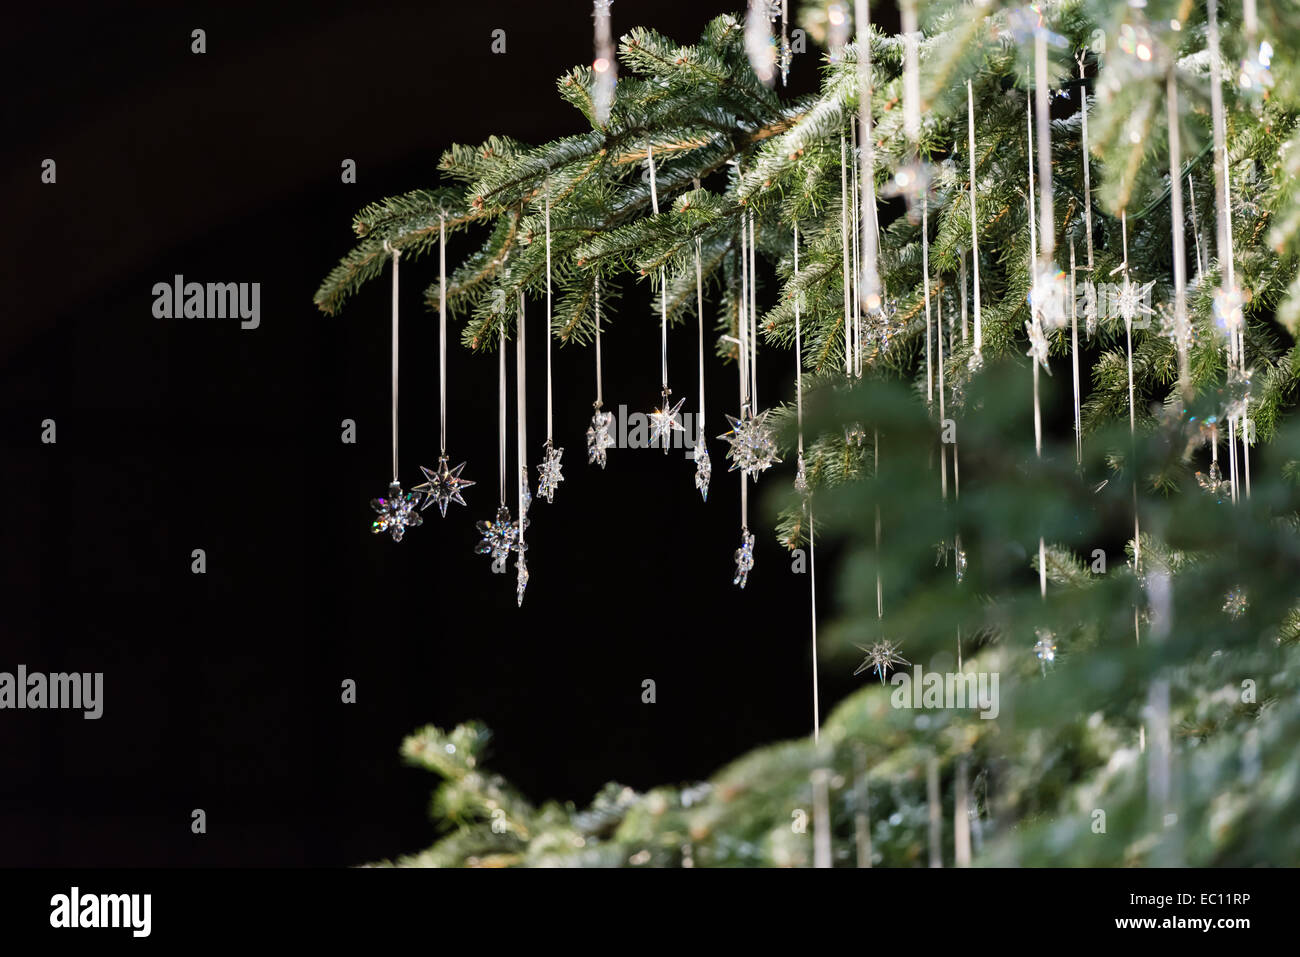 Swarovski jewelery is hanging off a Christmas tree at the Christmas market that is held inside the hall of Zurich - Stock Image